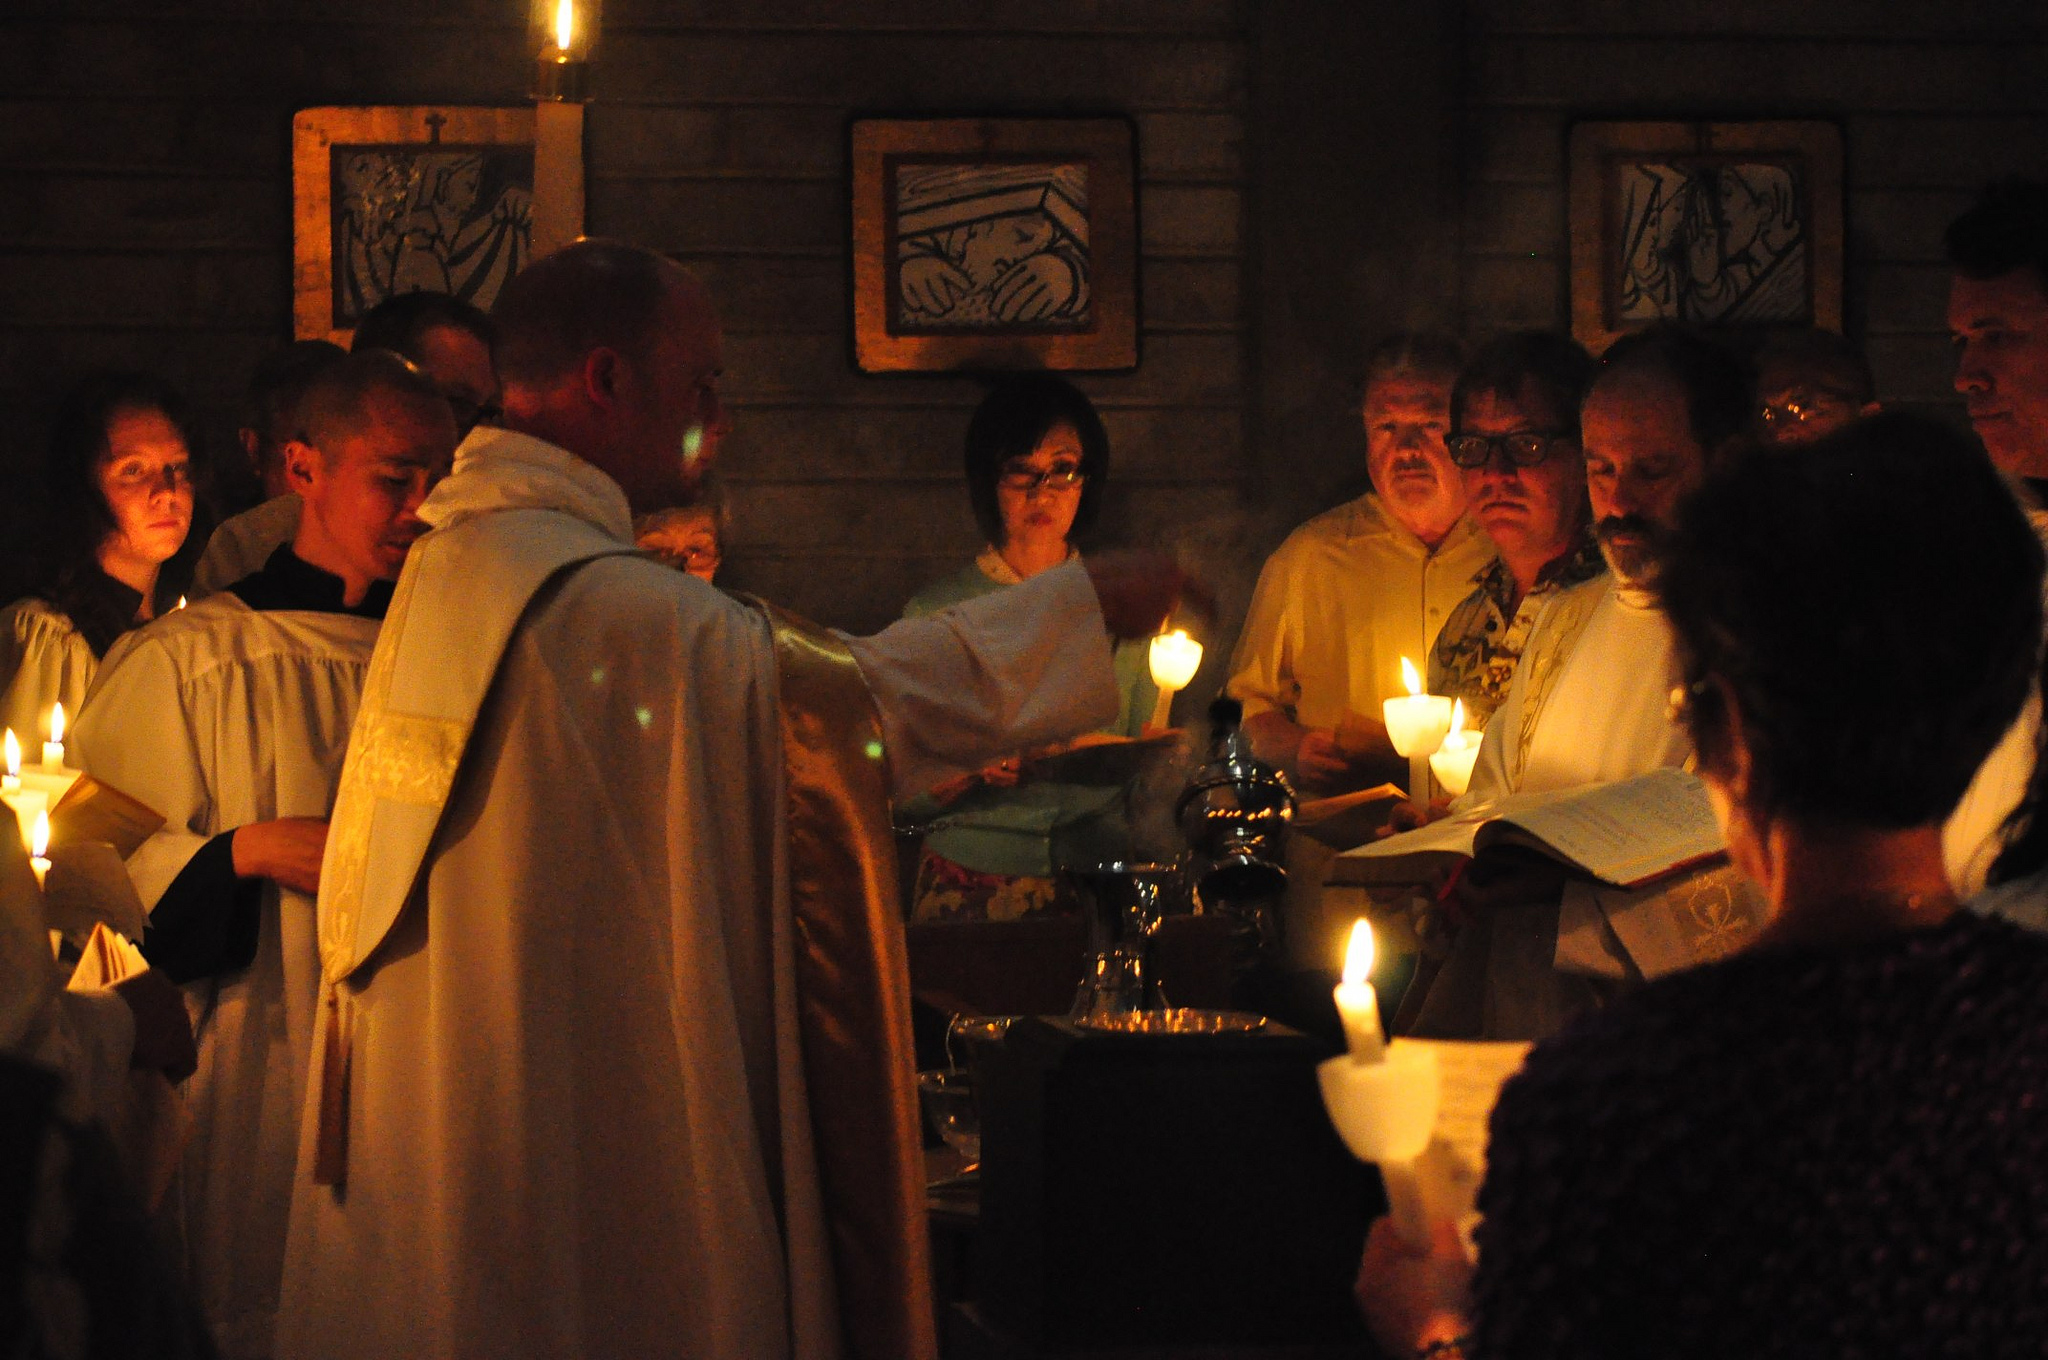 Censing of the Baptismal Font at the Easter Vigil